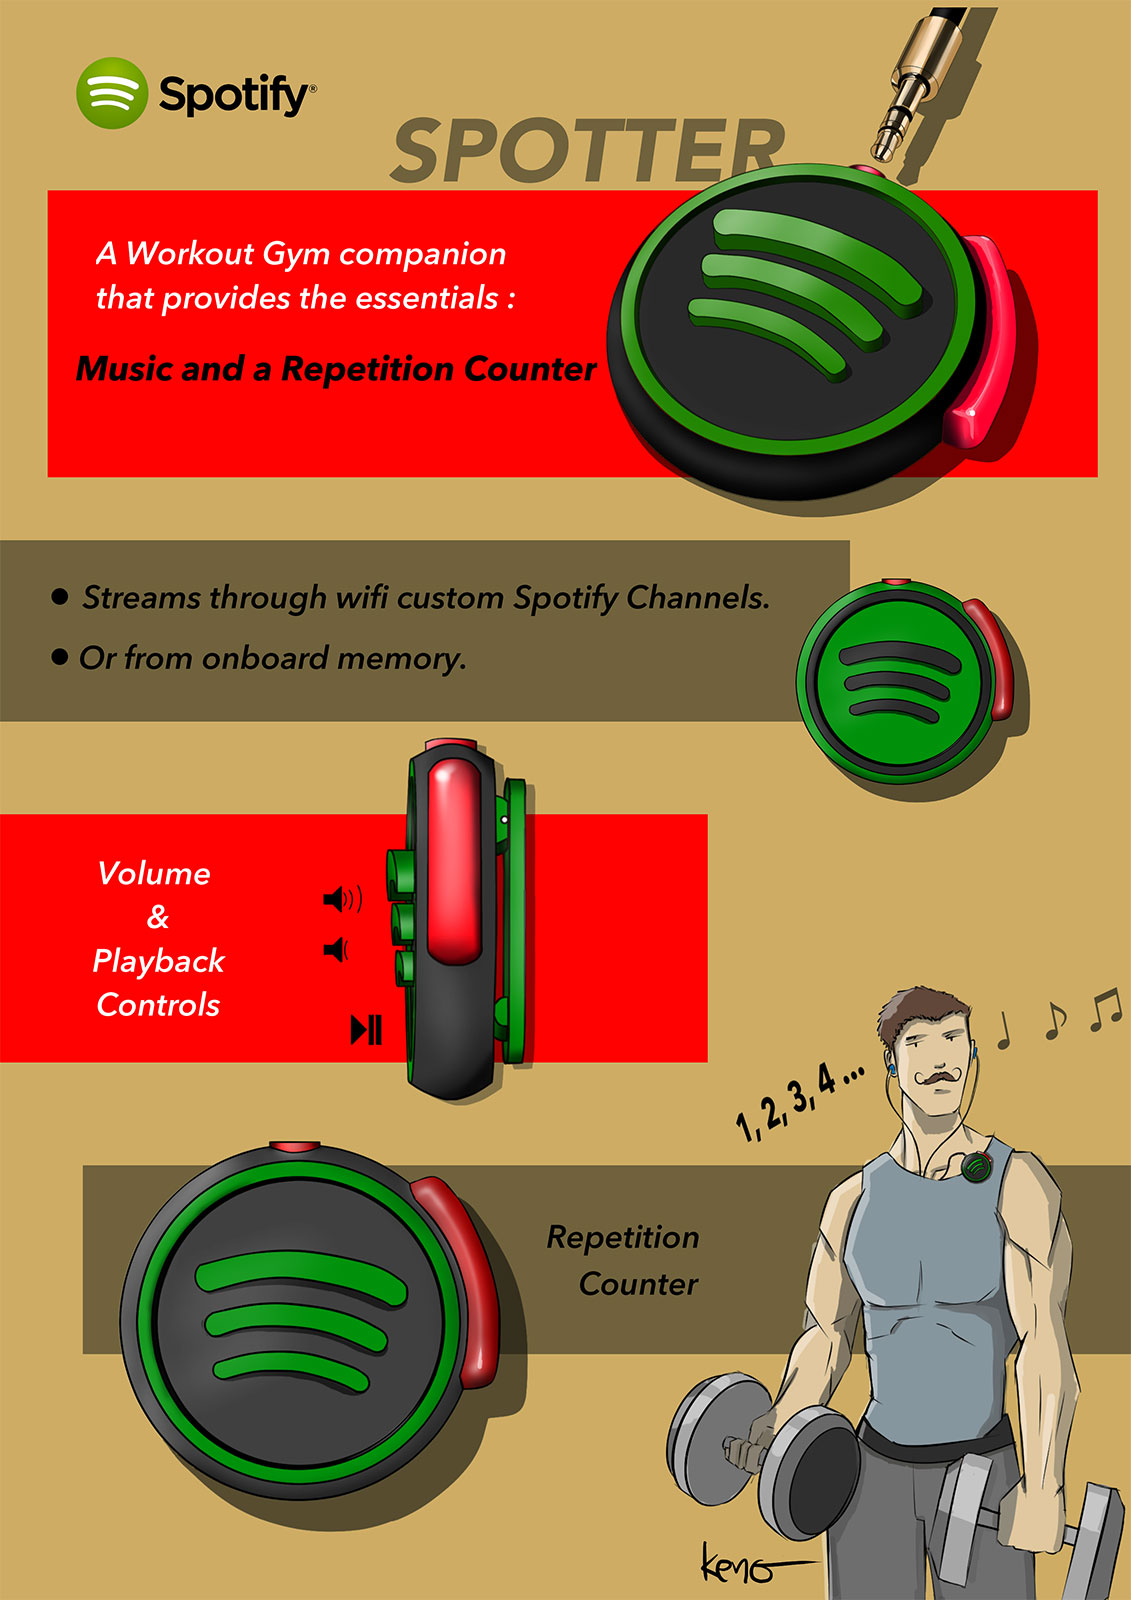 Product Concept Design Spotify Spotter Gym Companion